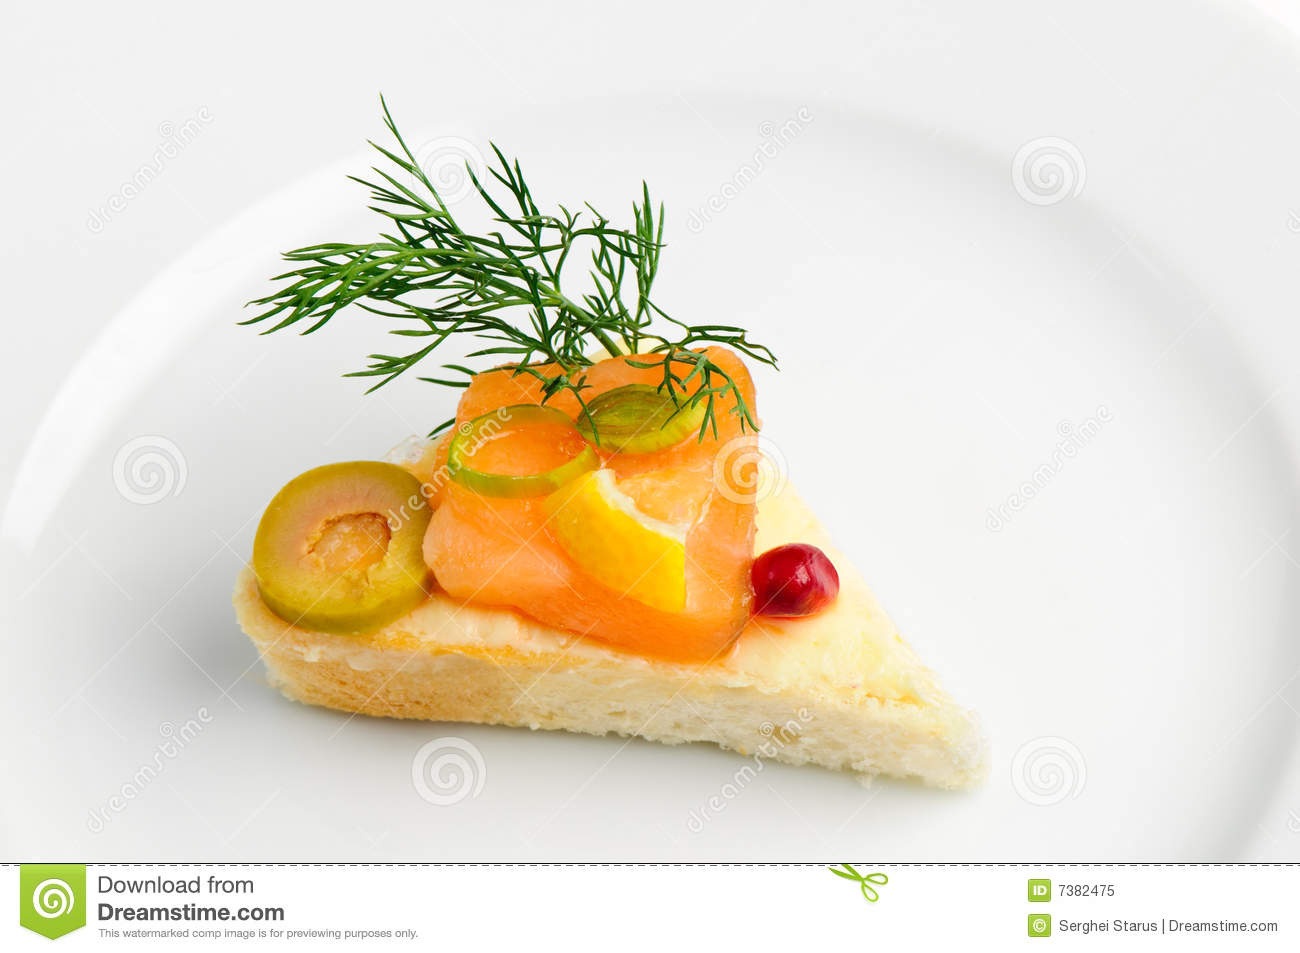 Canape with smoked salmon royalty free stock photo image for Canape vector download